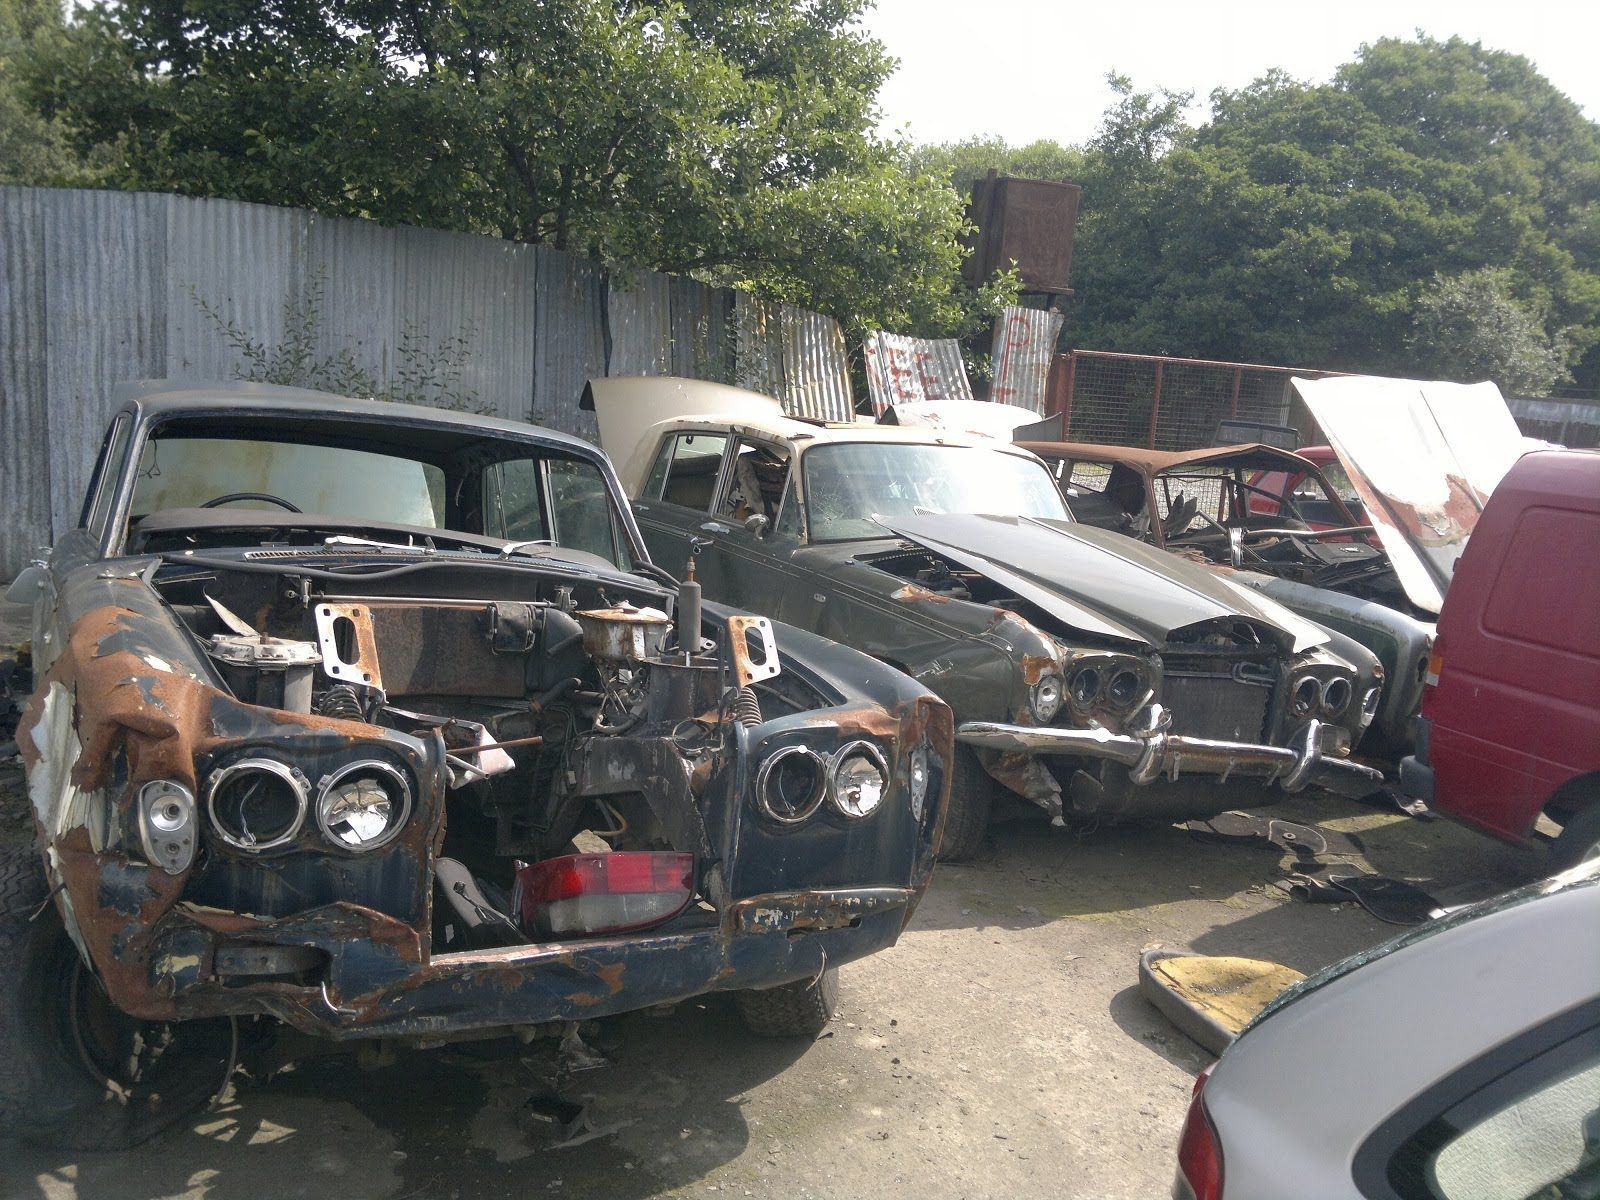 3 x Rolls Royce Scrapyard find Abandoned Classic Cars Breaking